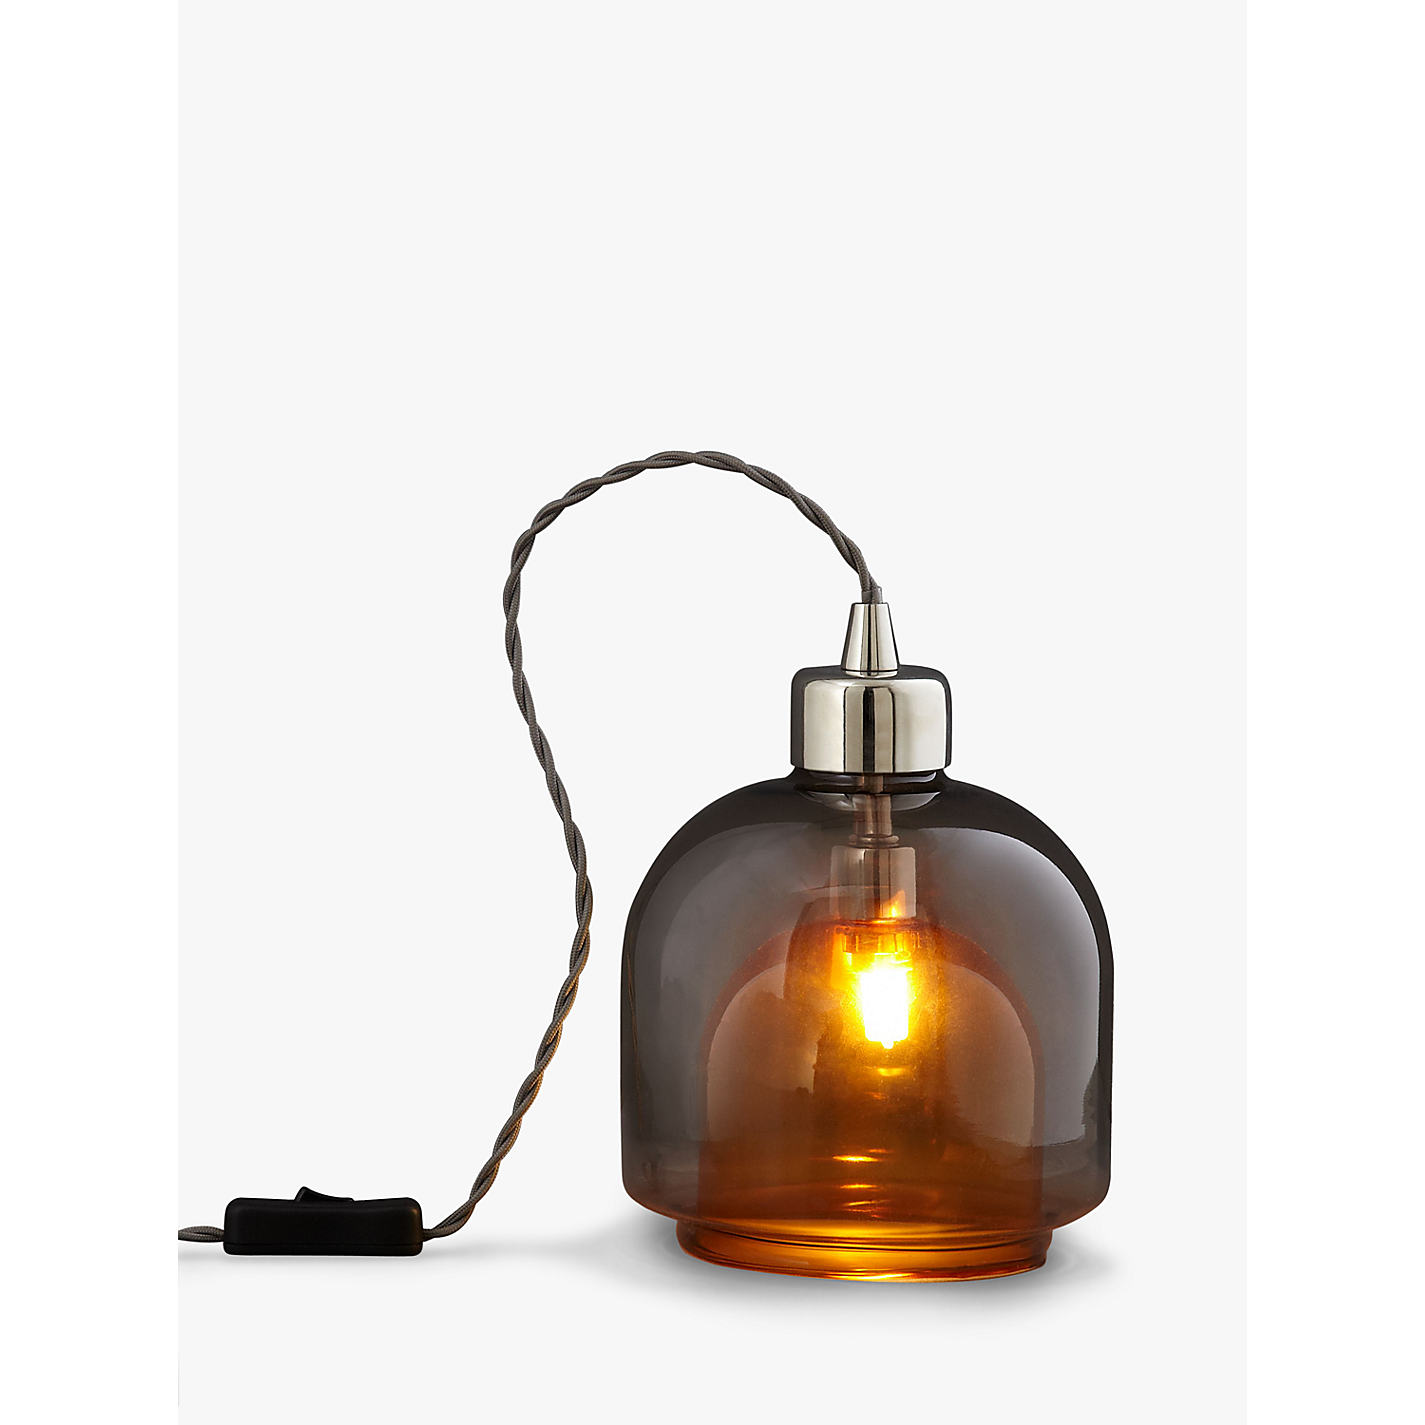 Buy john lewis ambience two layer glass table lamp john lewis buy john lewis ambience two layer glass table lamp online at johnlewis geotapseo Image collections